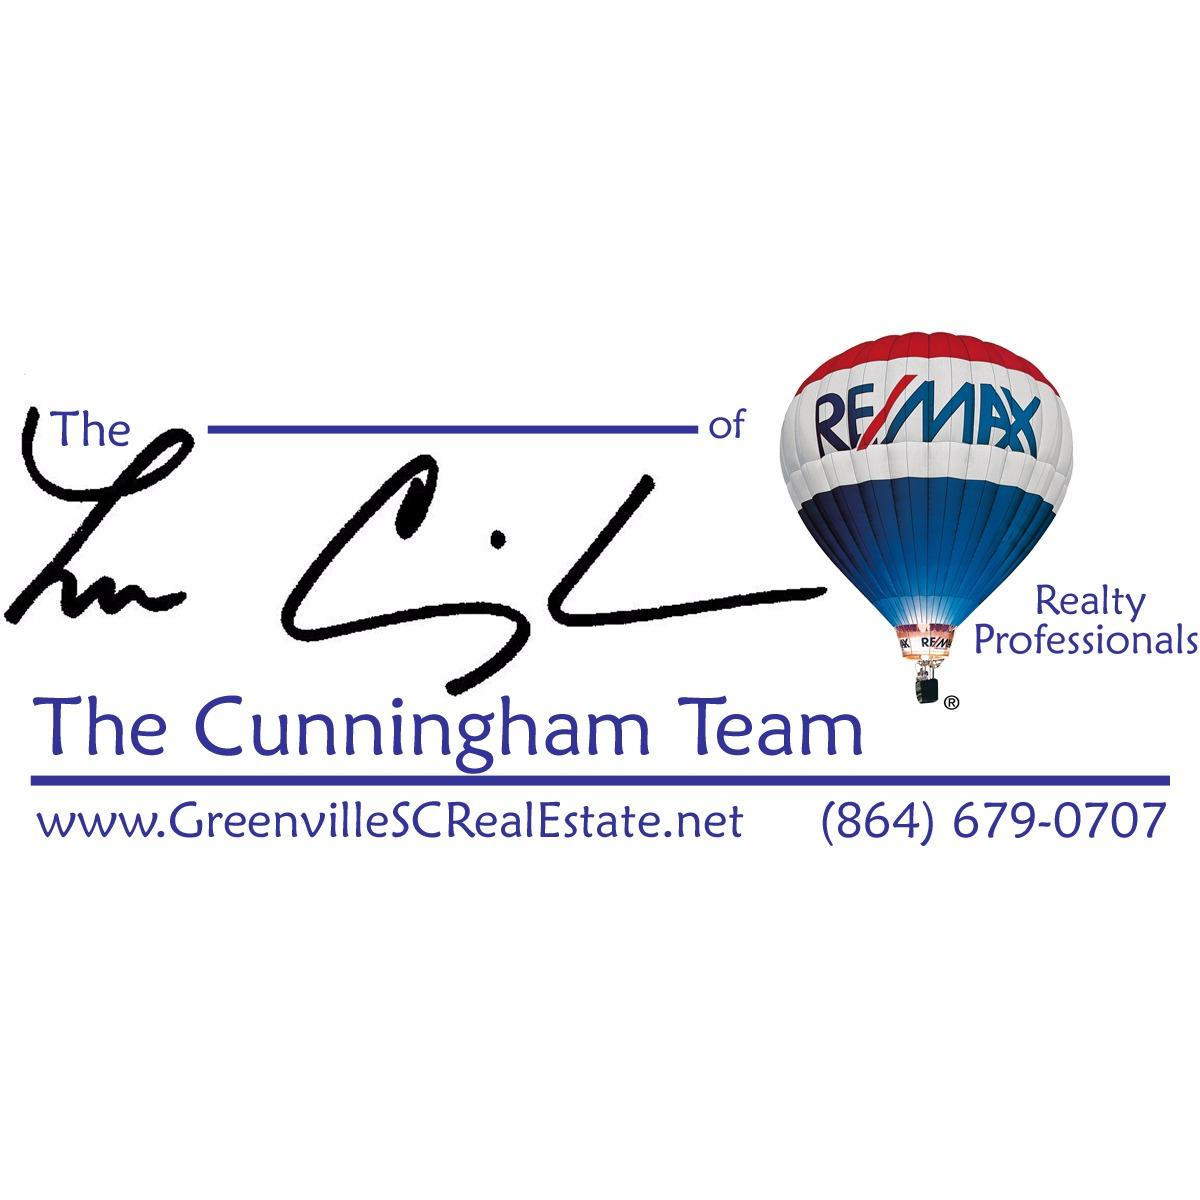 The Cunningham Team at Re/MAX Realty Professionals